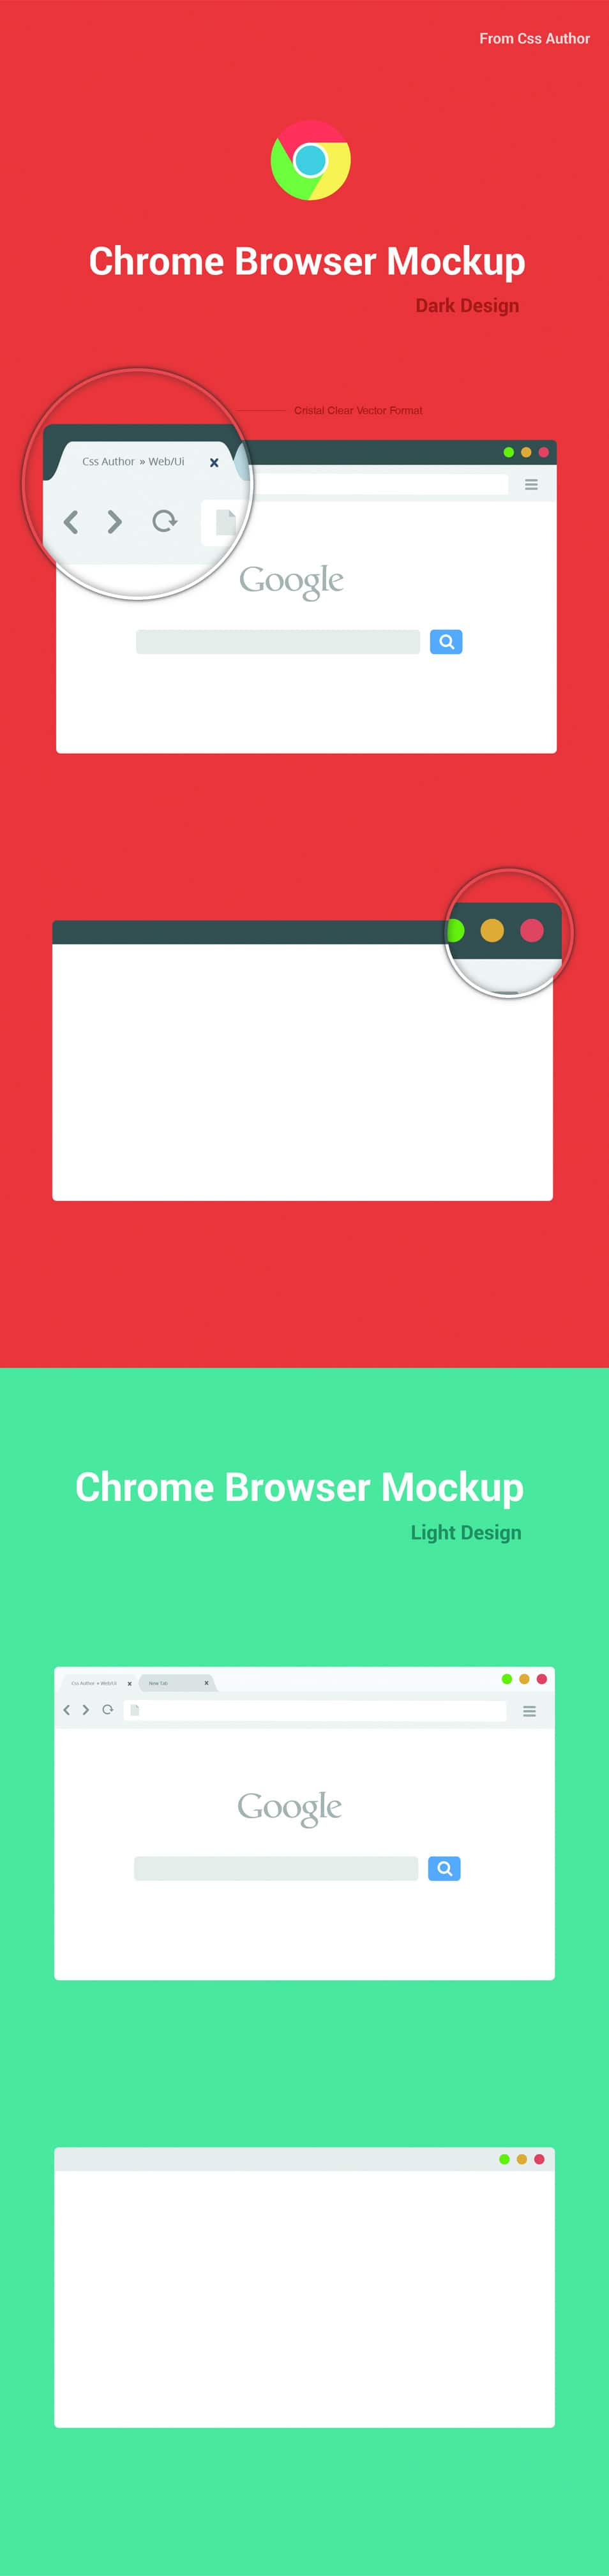 Free Chrome Browser Mockup Vector